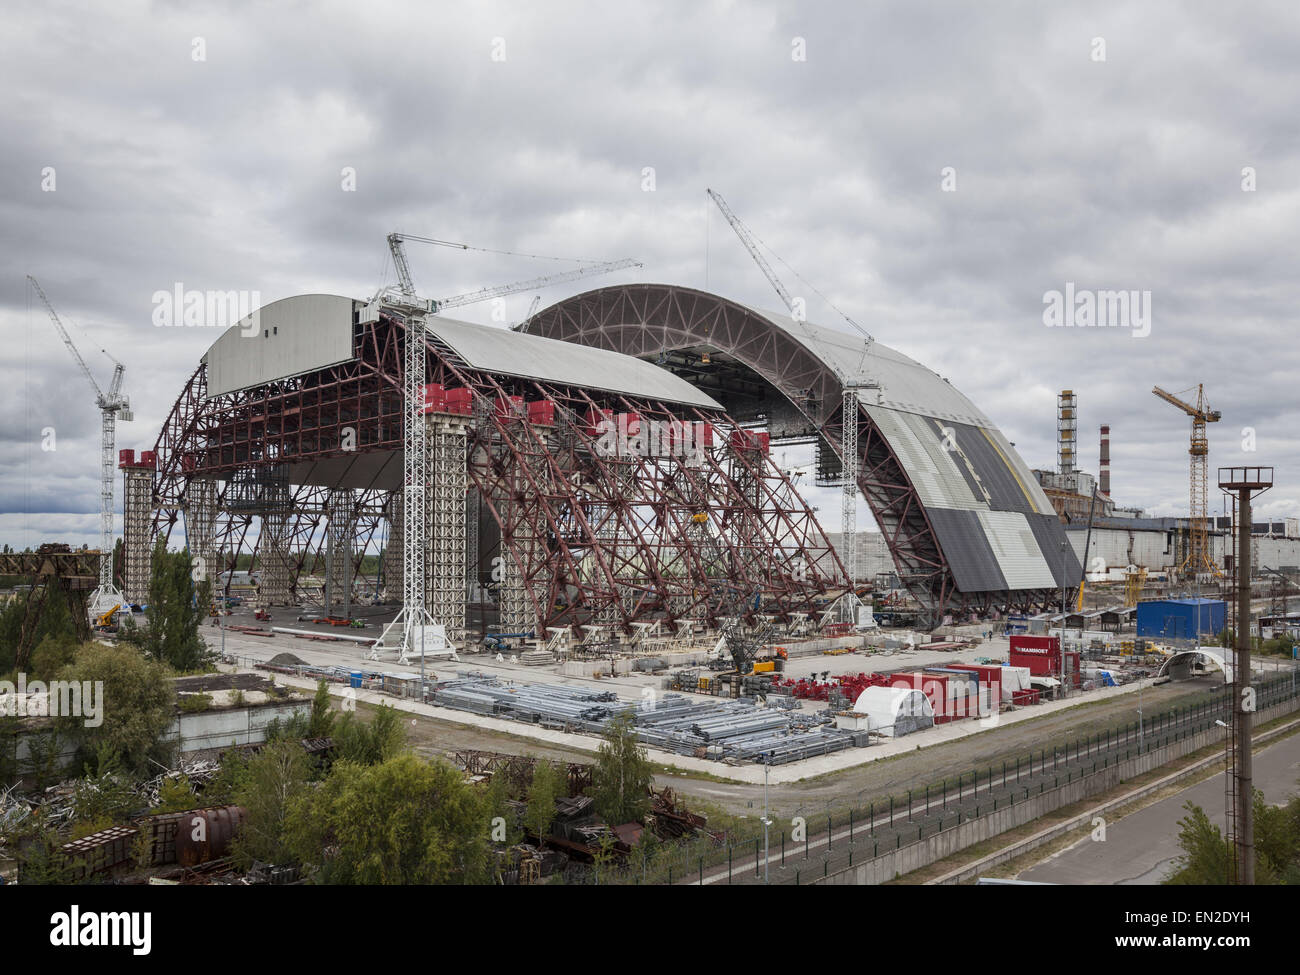 Chernobyl, Ukraine. 27th Aug, 2014. Construction of the huge dome over the Chernobyl nuclear reactor number 4 destroyed - Stock Image